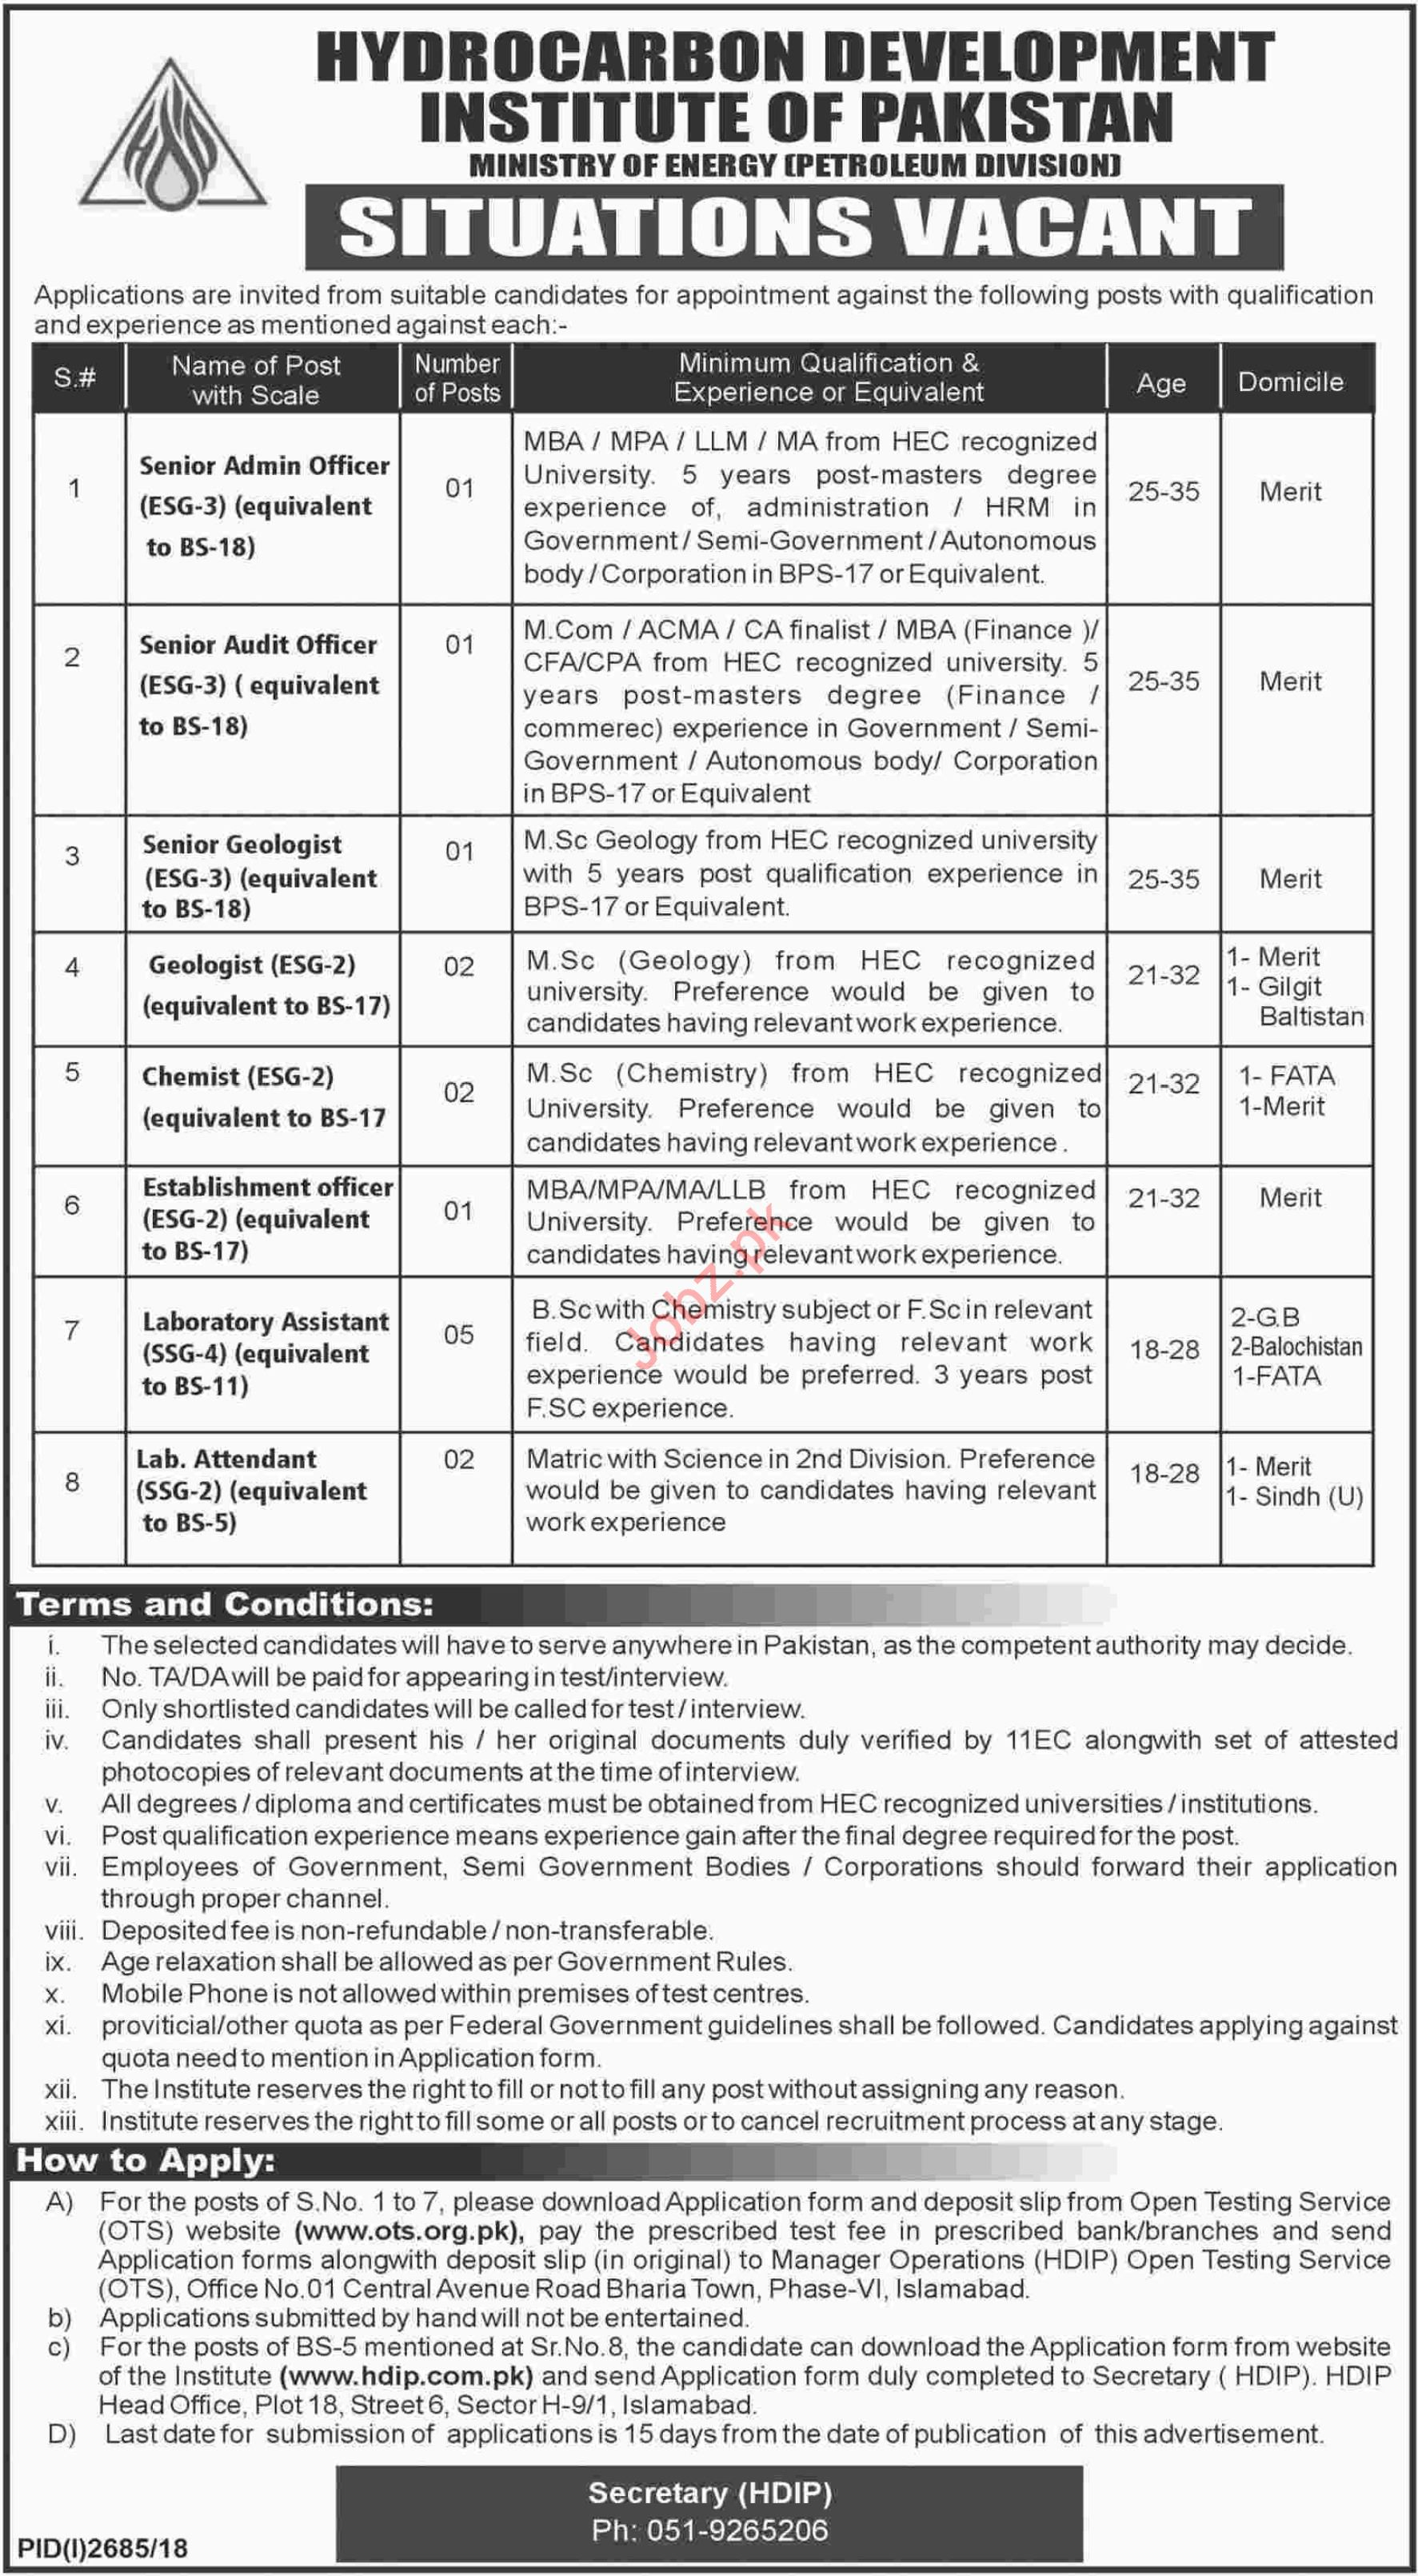 Hydrocarbon Development Institute of Pakistan HDIP Jobs 2019